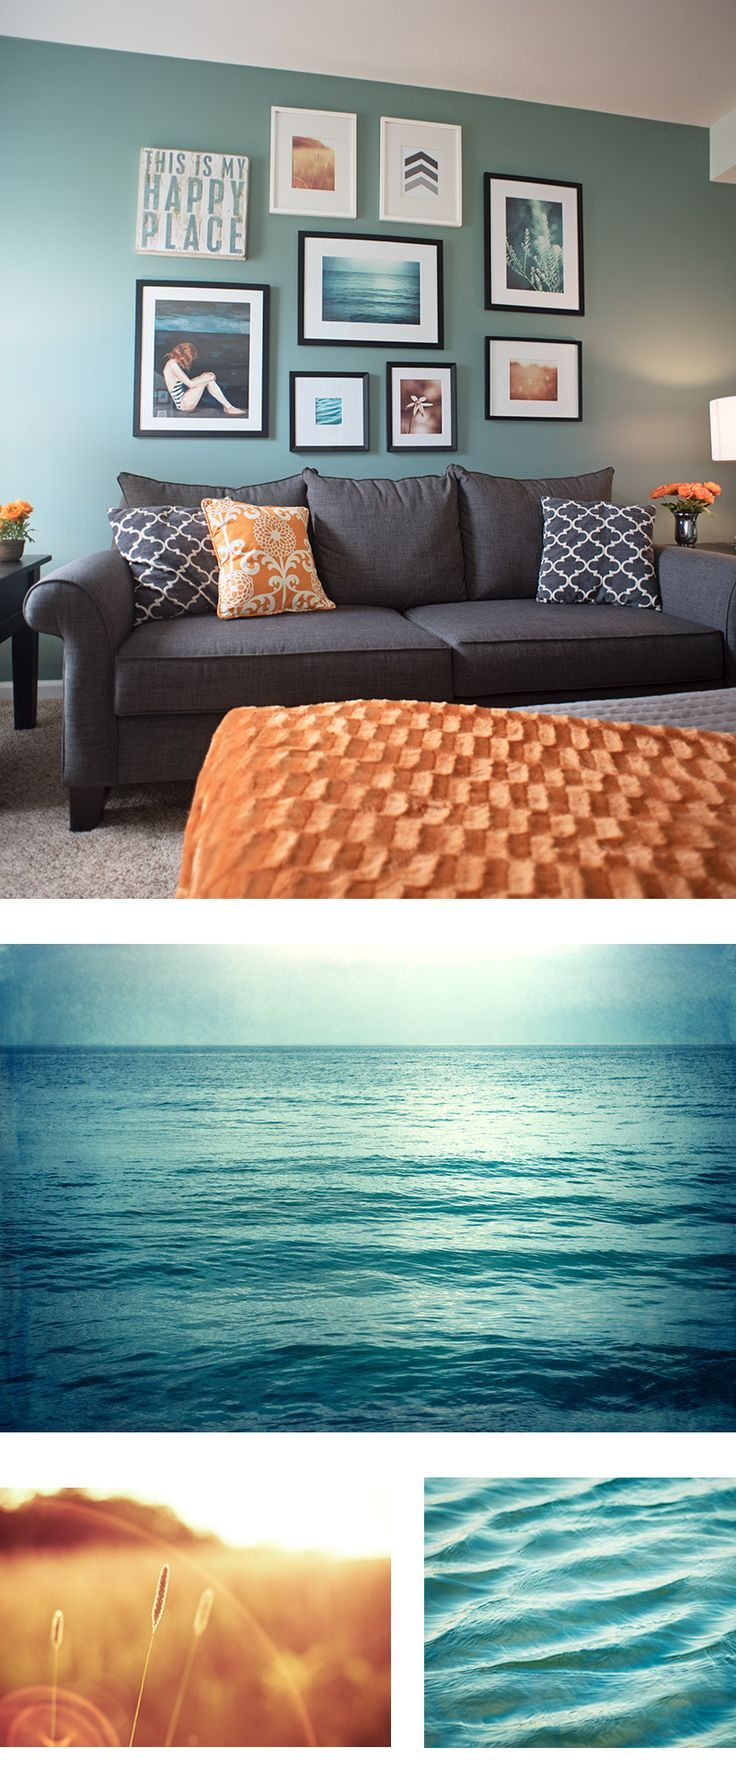 My Living Room Art Gallery Wall | Teal Decor | Pinterest ...